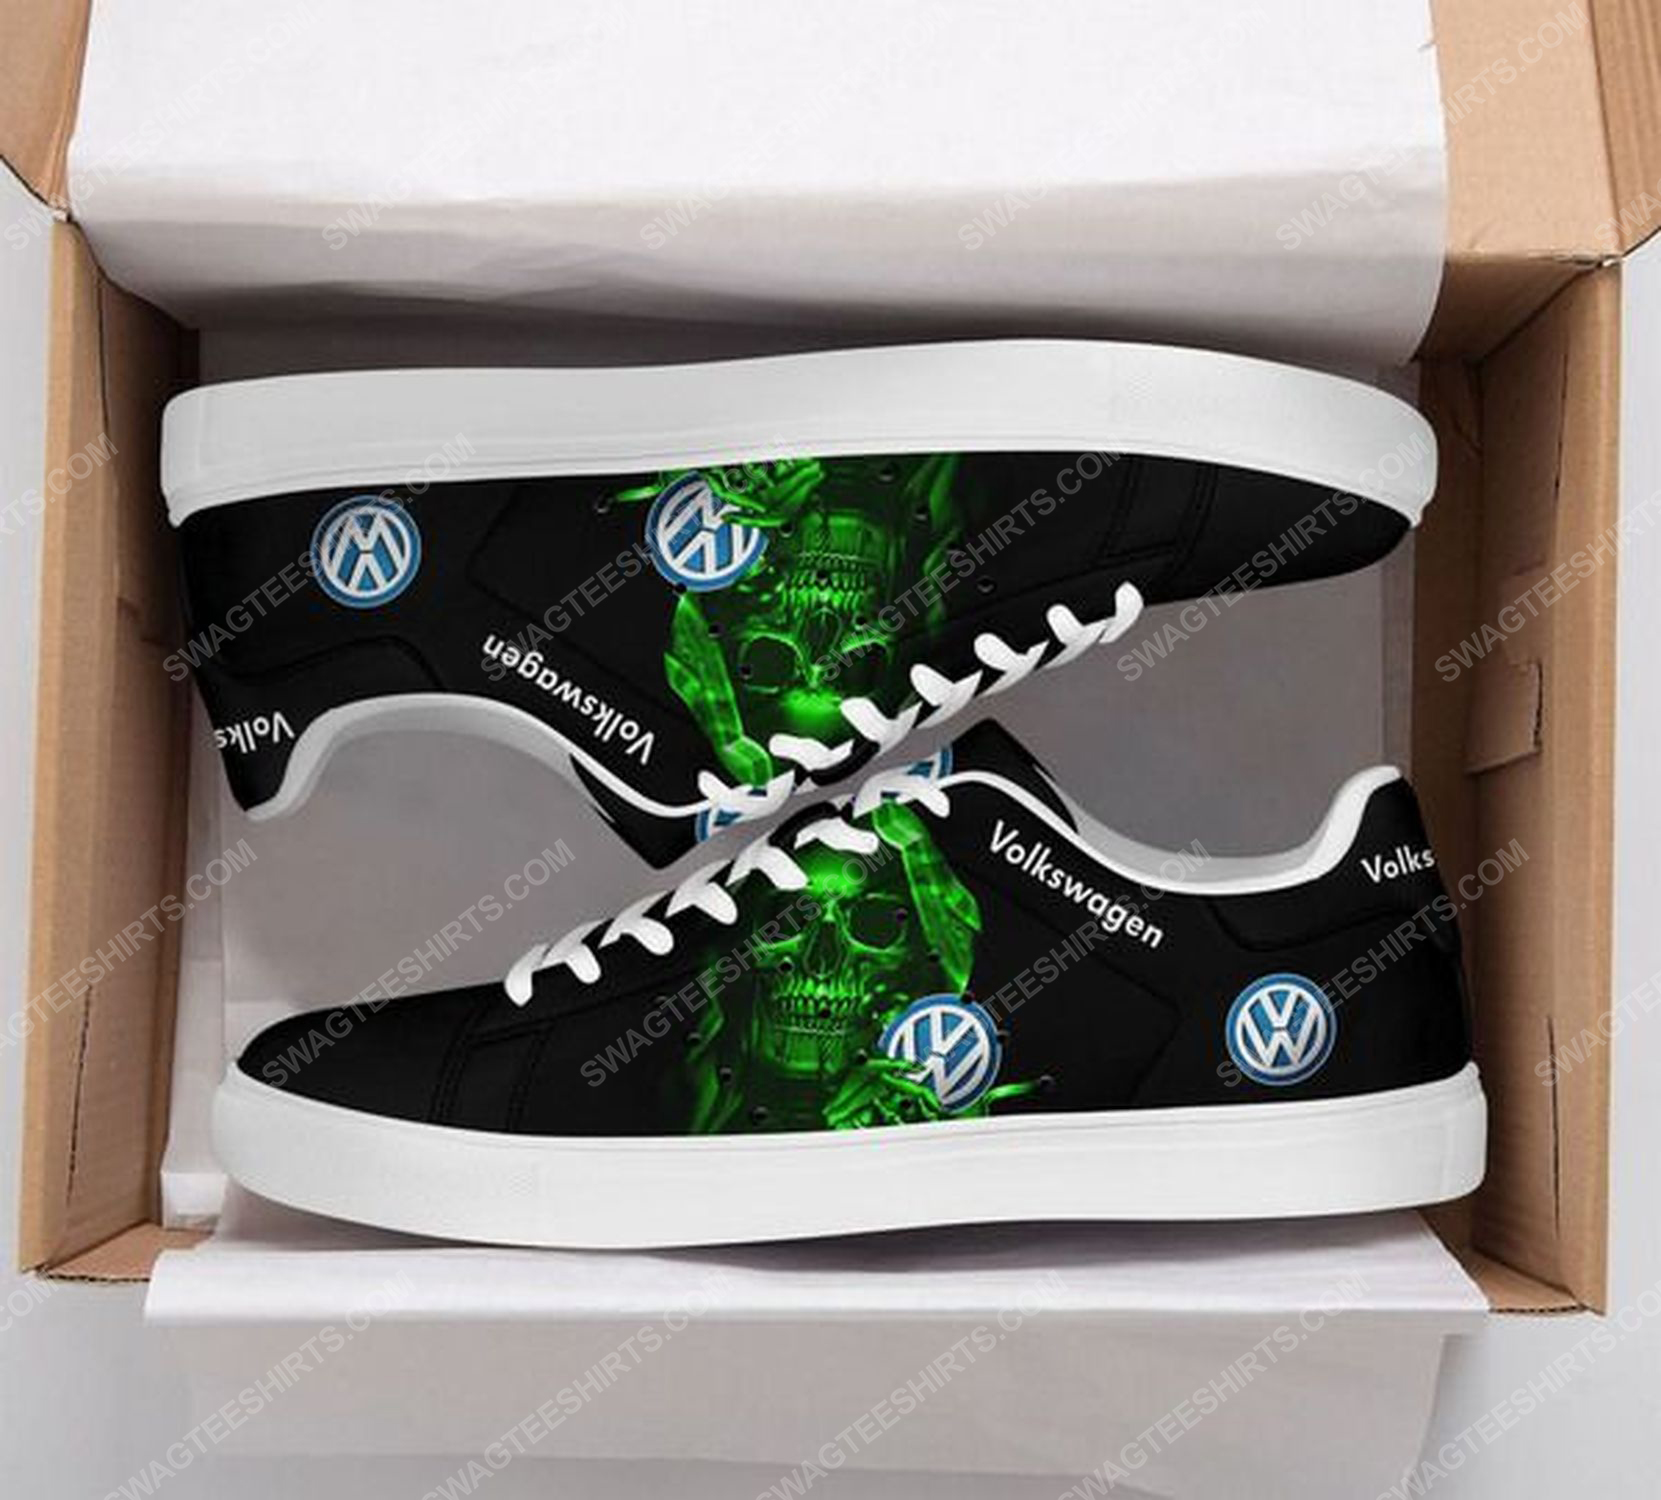 Volkswagen and skull stan smith shoes